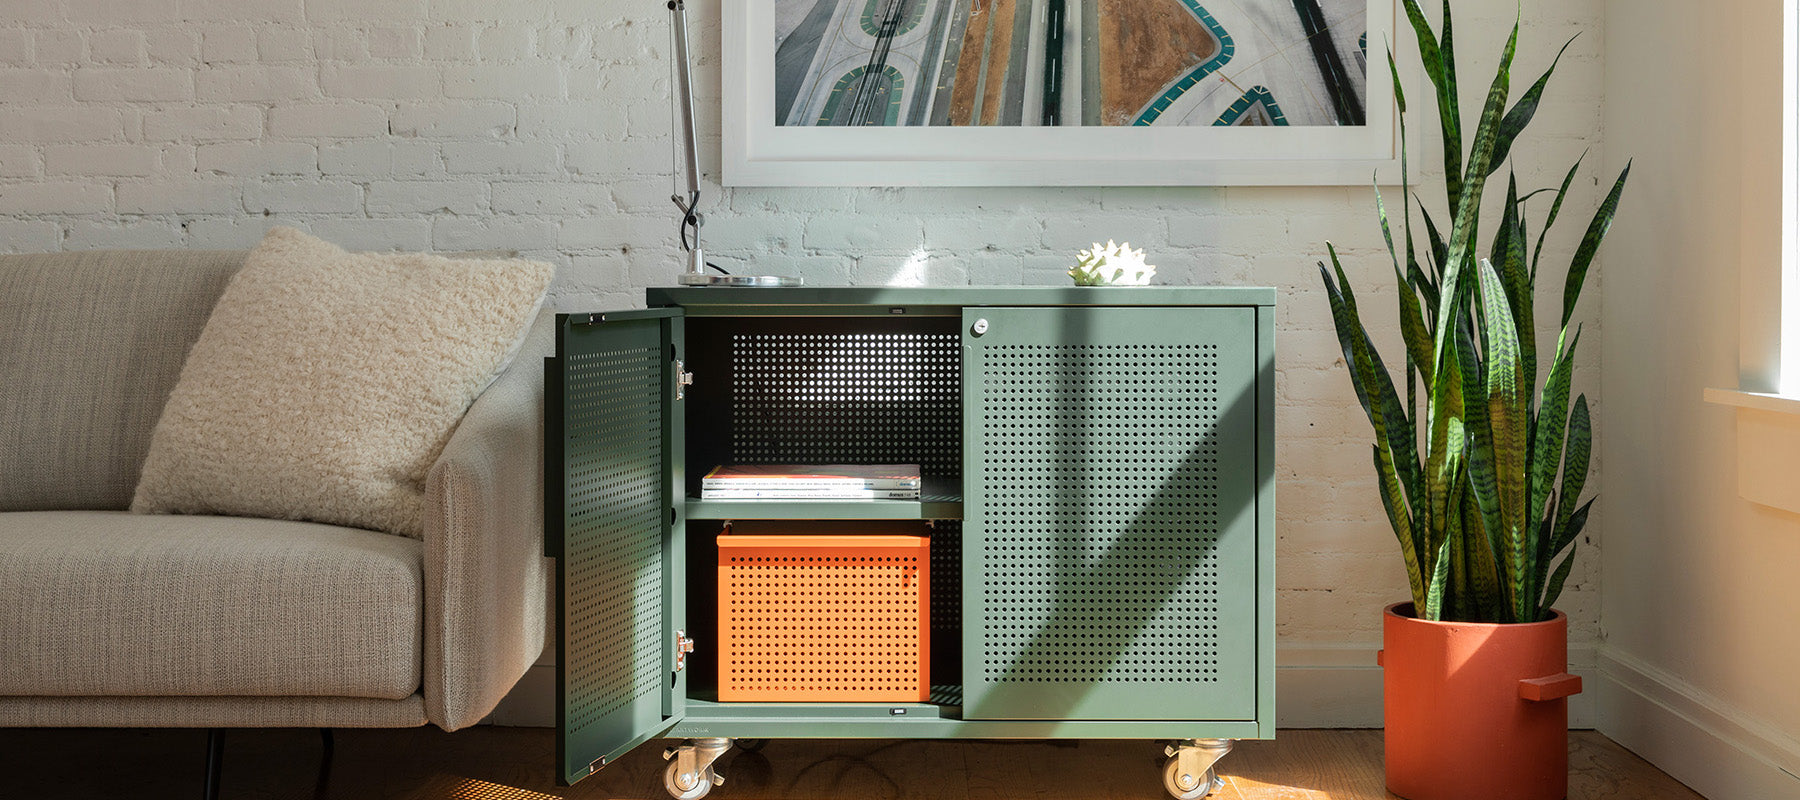 Heartwork Active Duty Assistant in deep green with open door and a warm orange basket inside in home setting